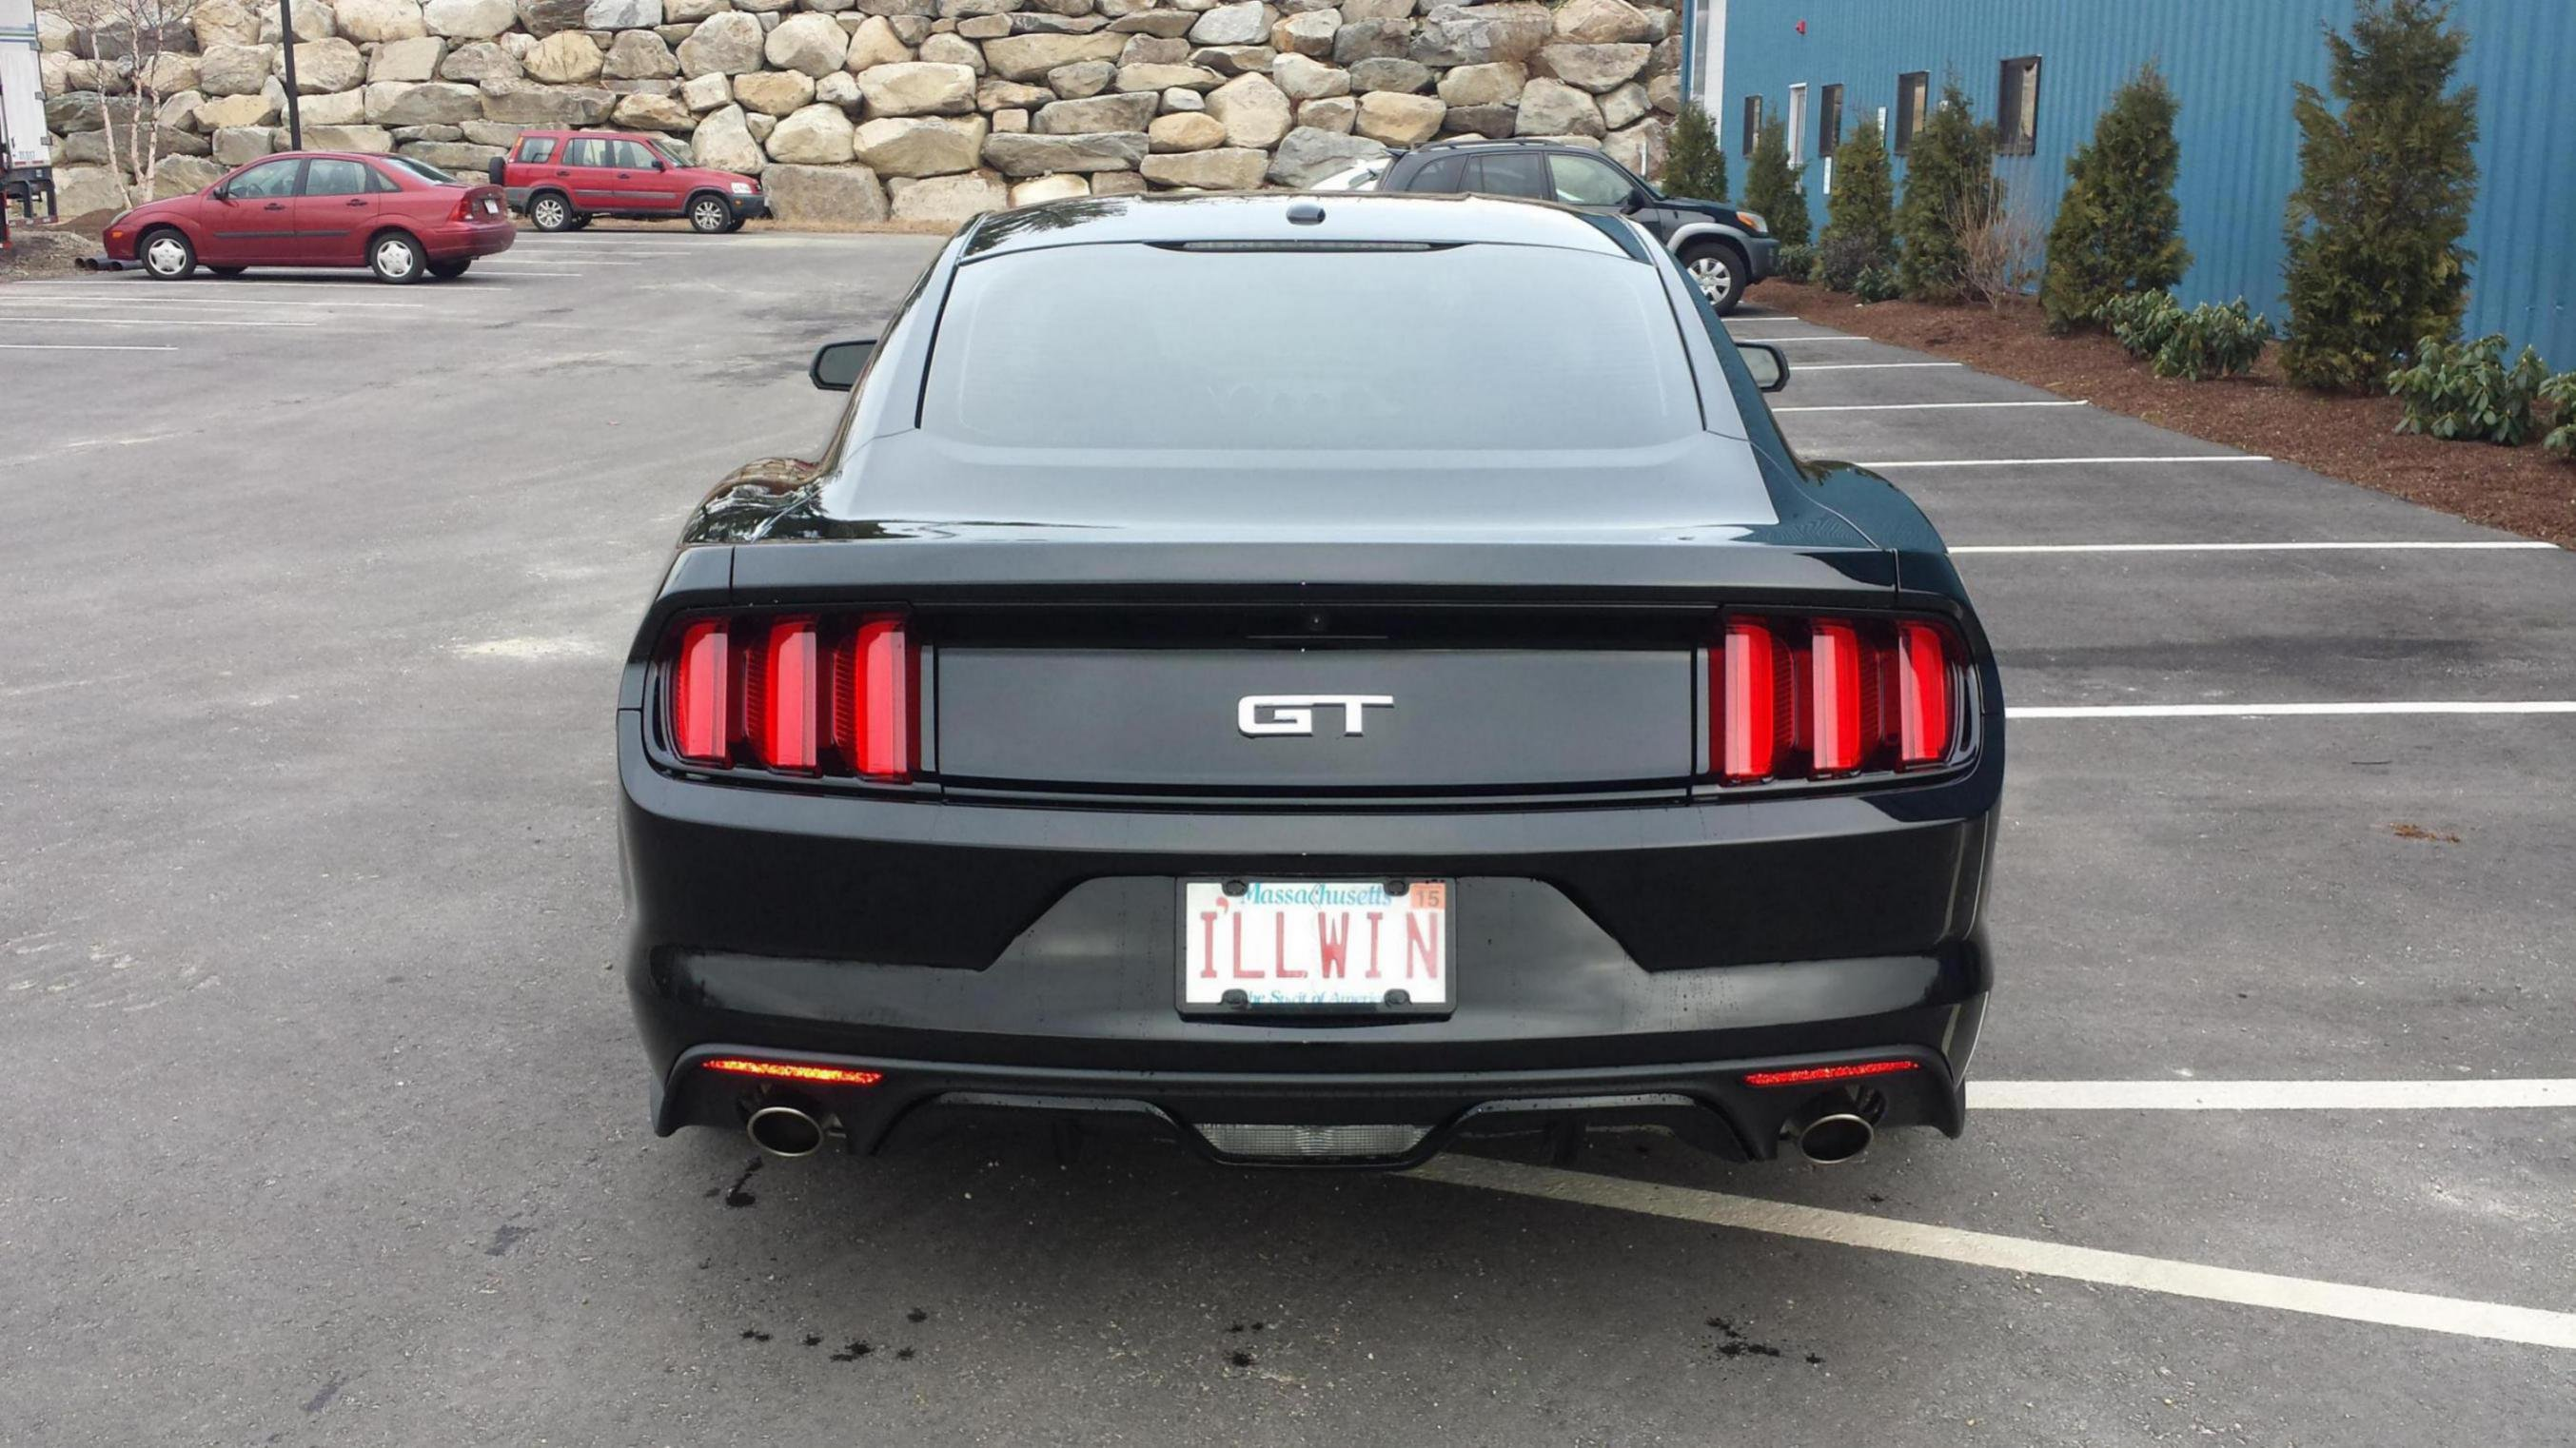 Licence plate ideas? - Ford Mustang Forum